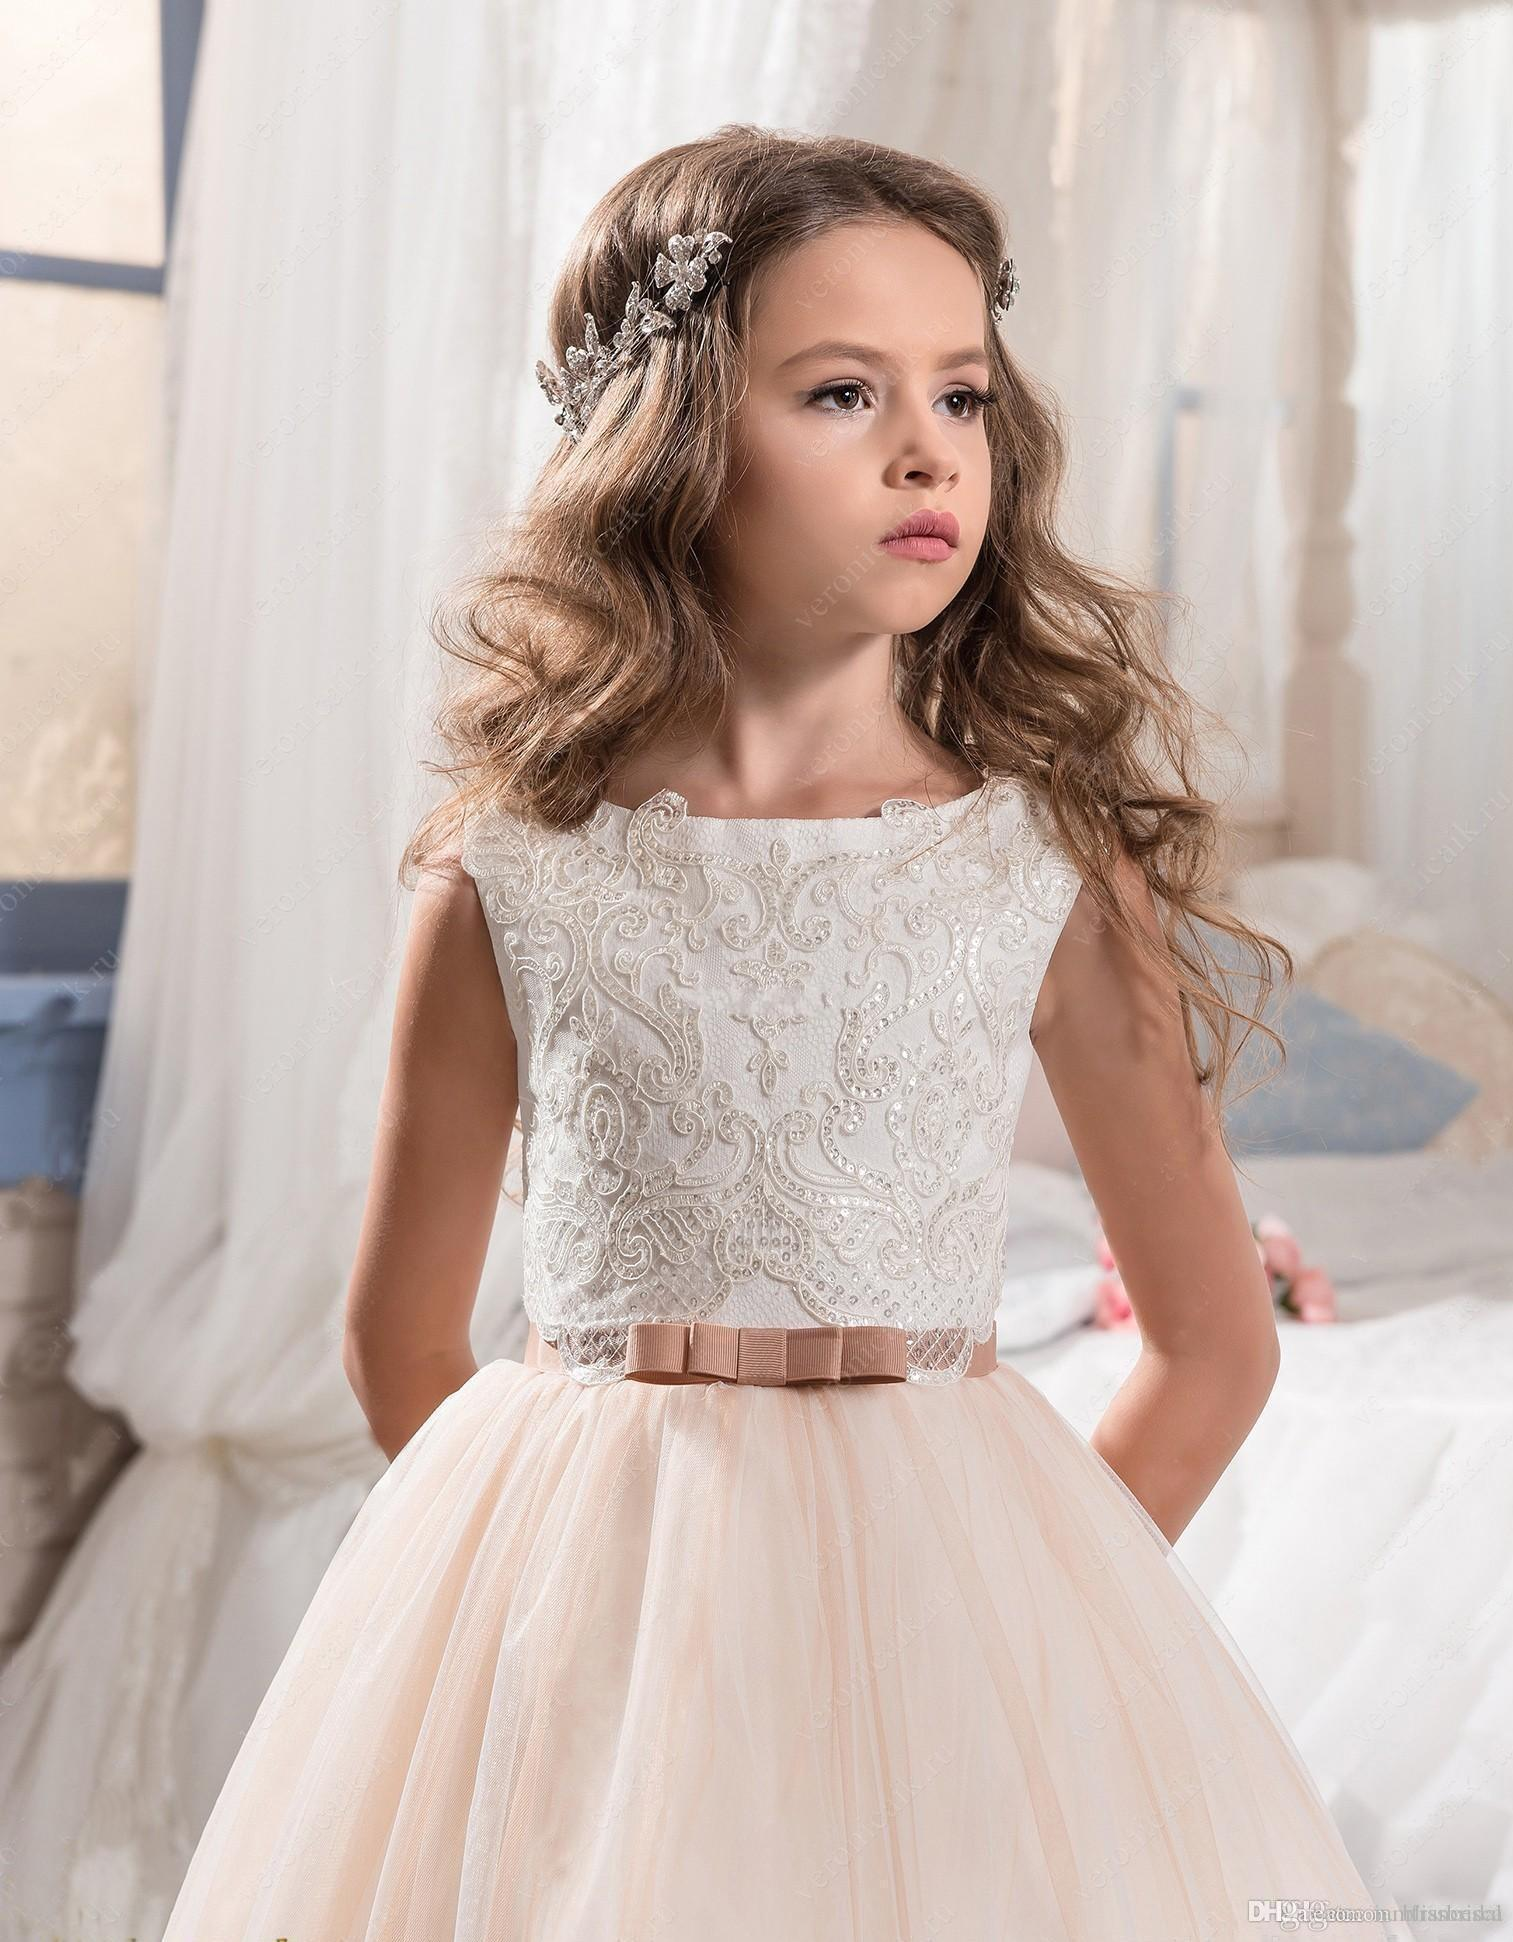 2017 Vintage Flower Girl Dresses For Weddings Blush Pink Custom Made Princess Tutu Sequined Appliqued Lace Bow Kids First Communion Gowns